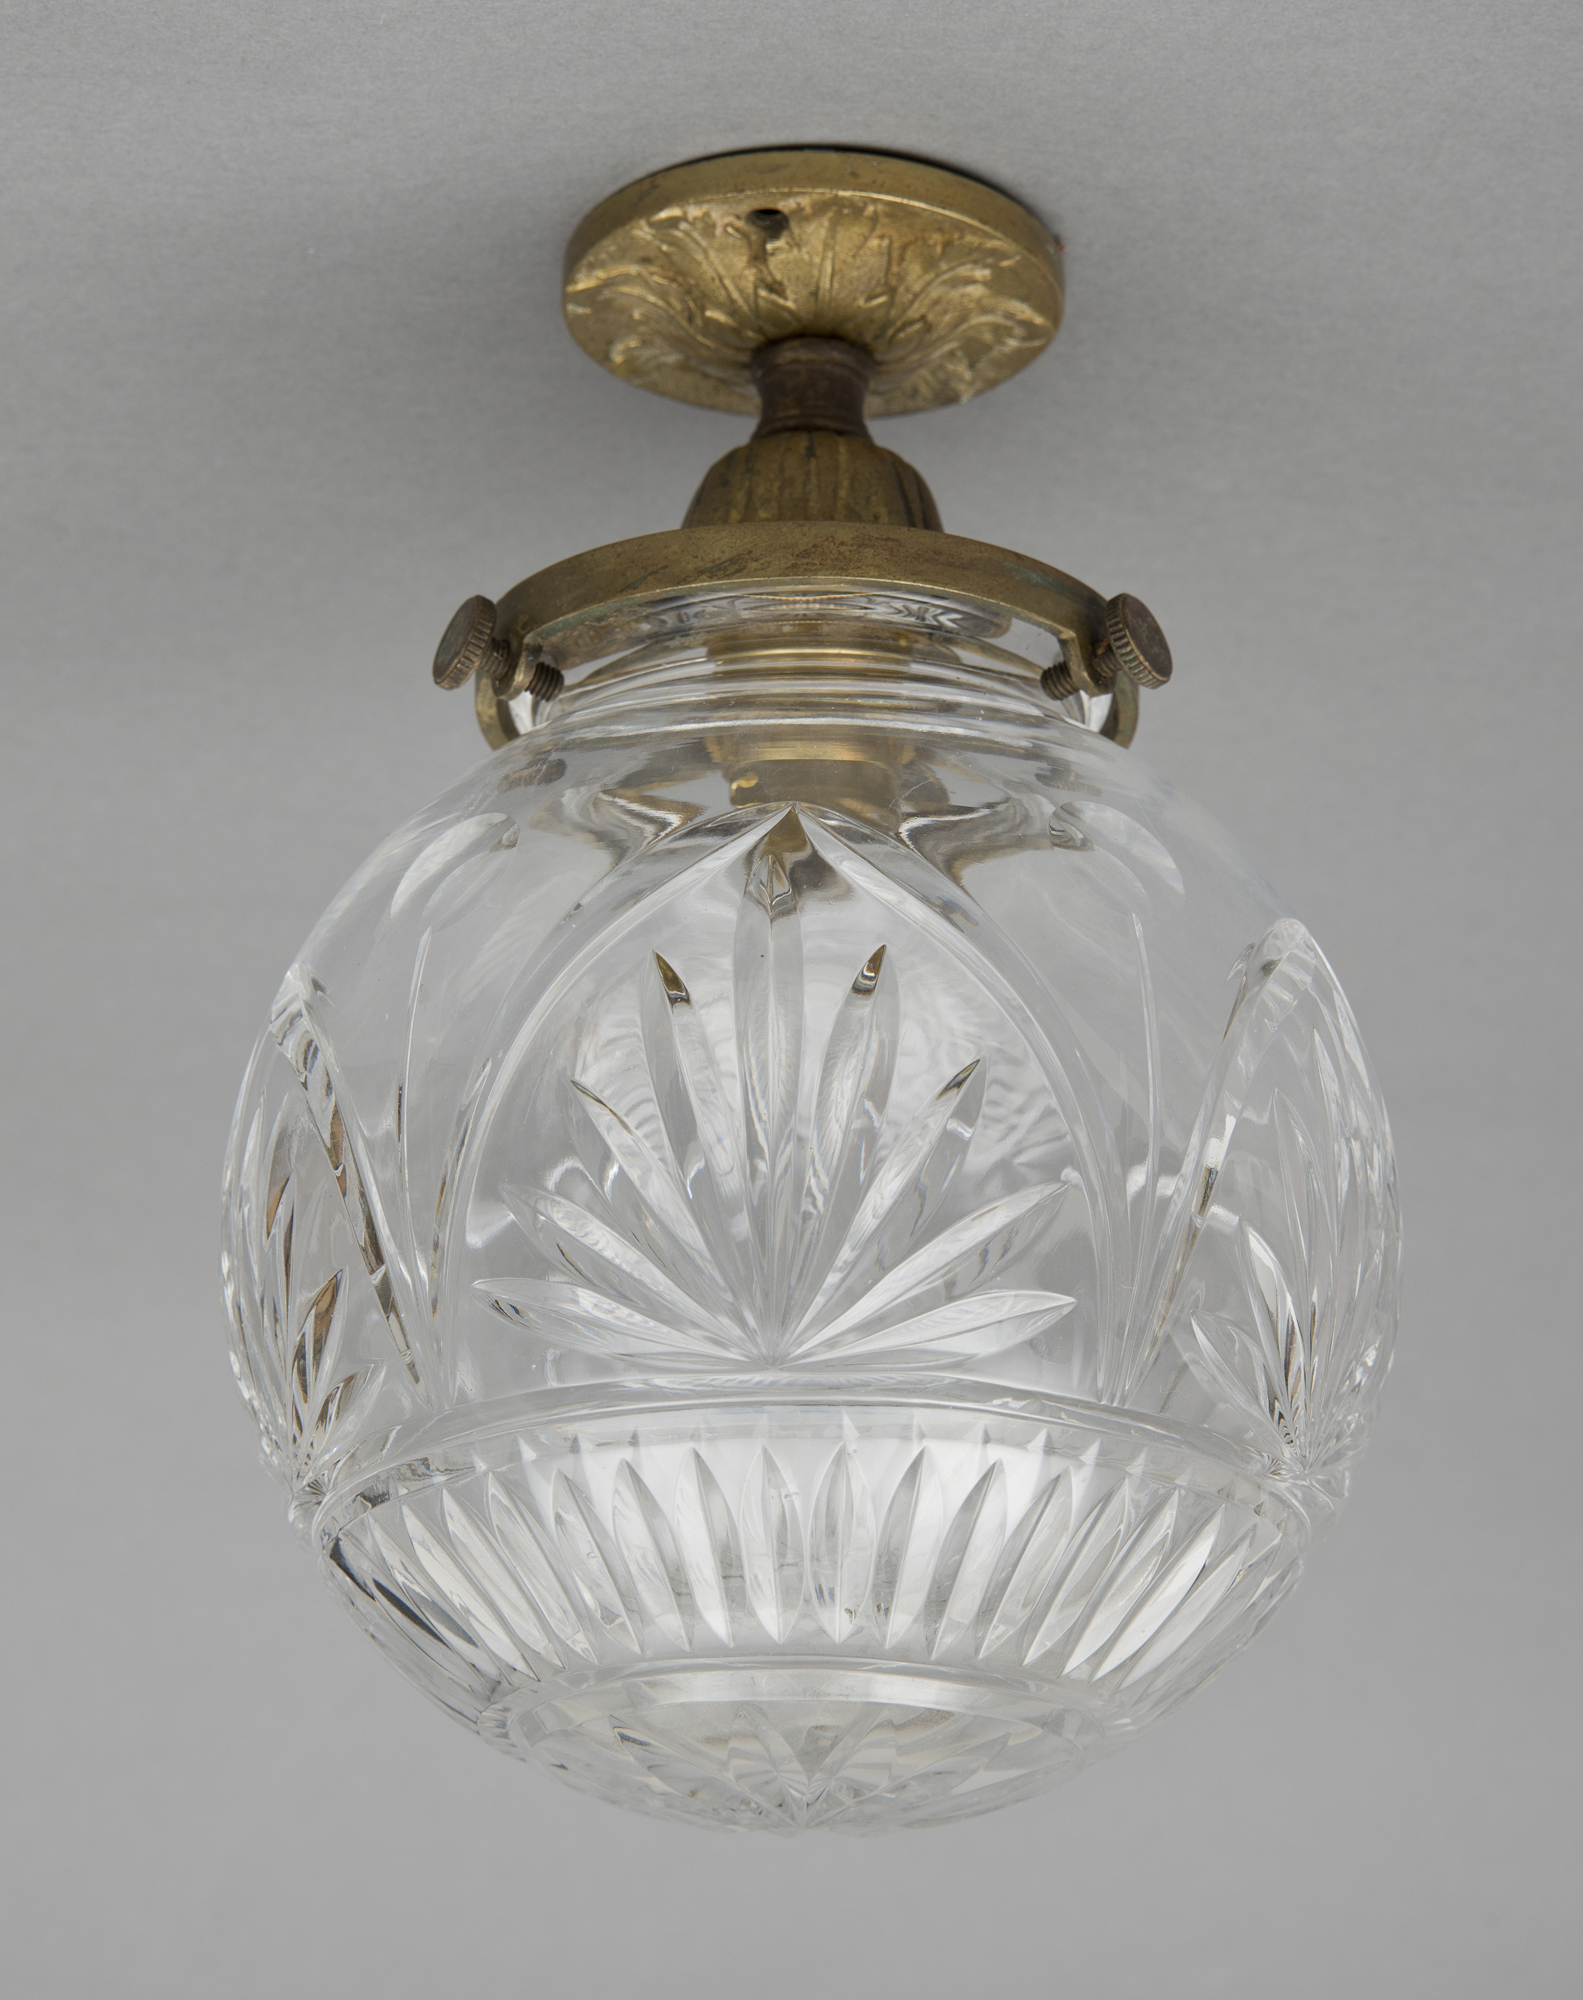 lighting antique brooklyn doctor lamp light fixtures restoration rewiring repair chandelier shades and new the york